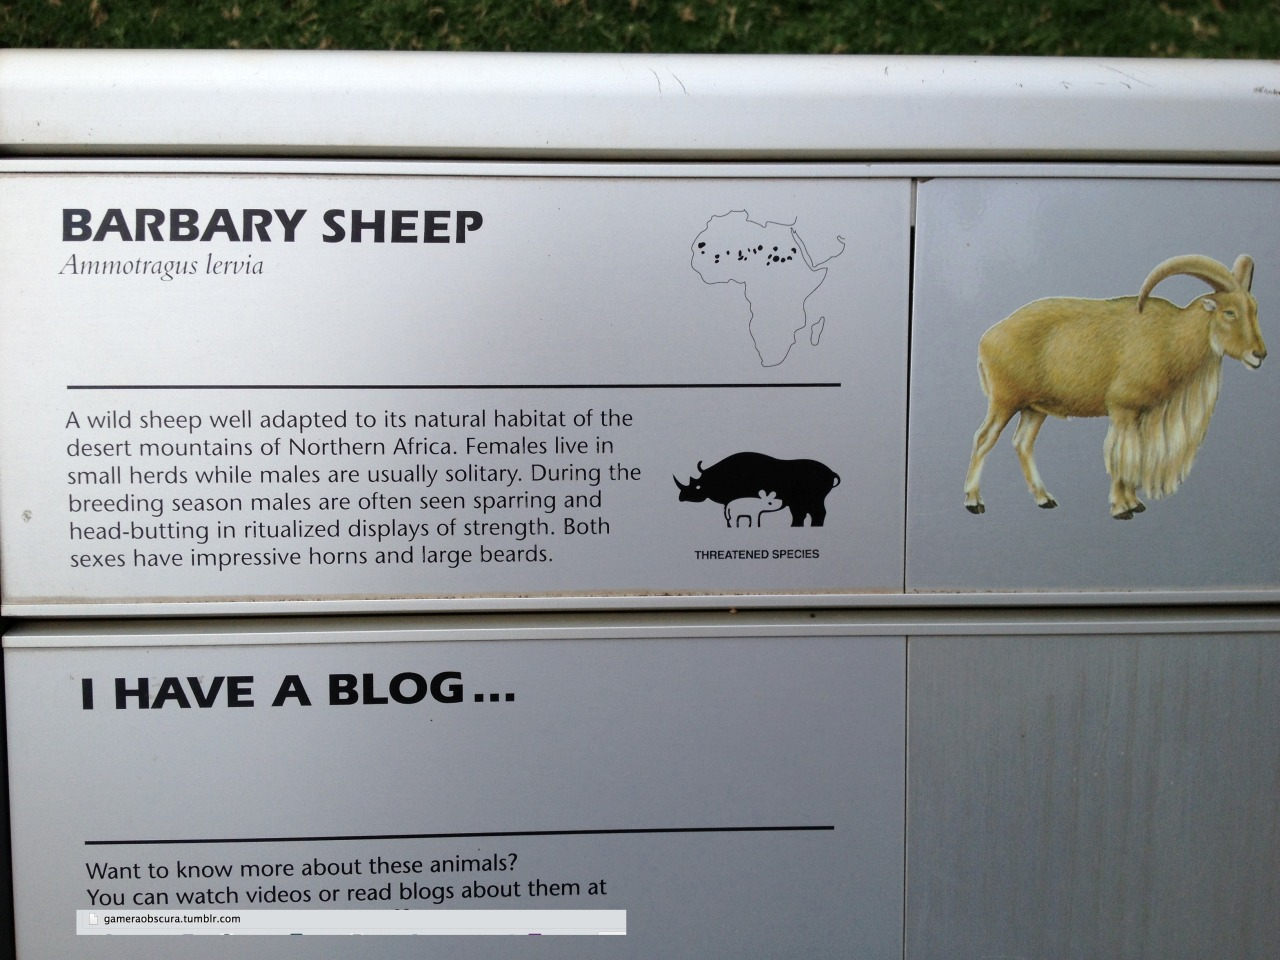 cool sign i saw at the zoo today those sheep are dope